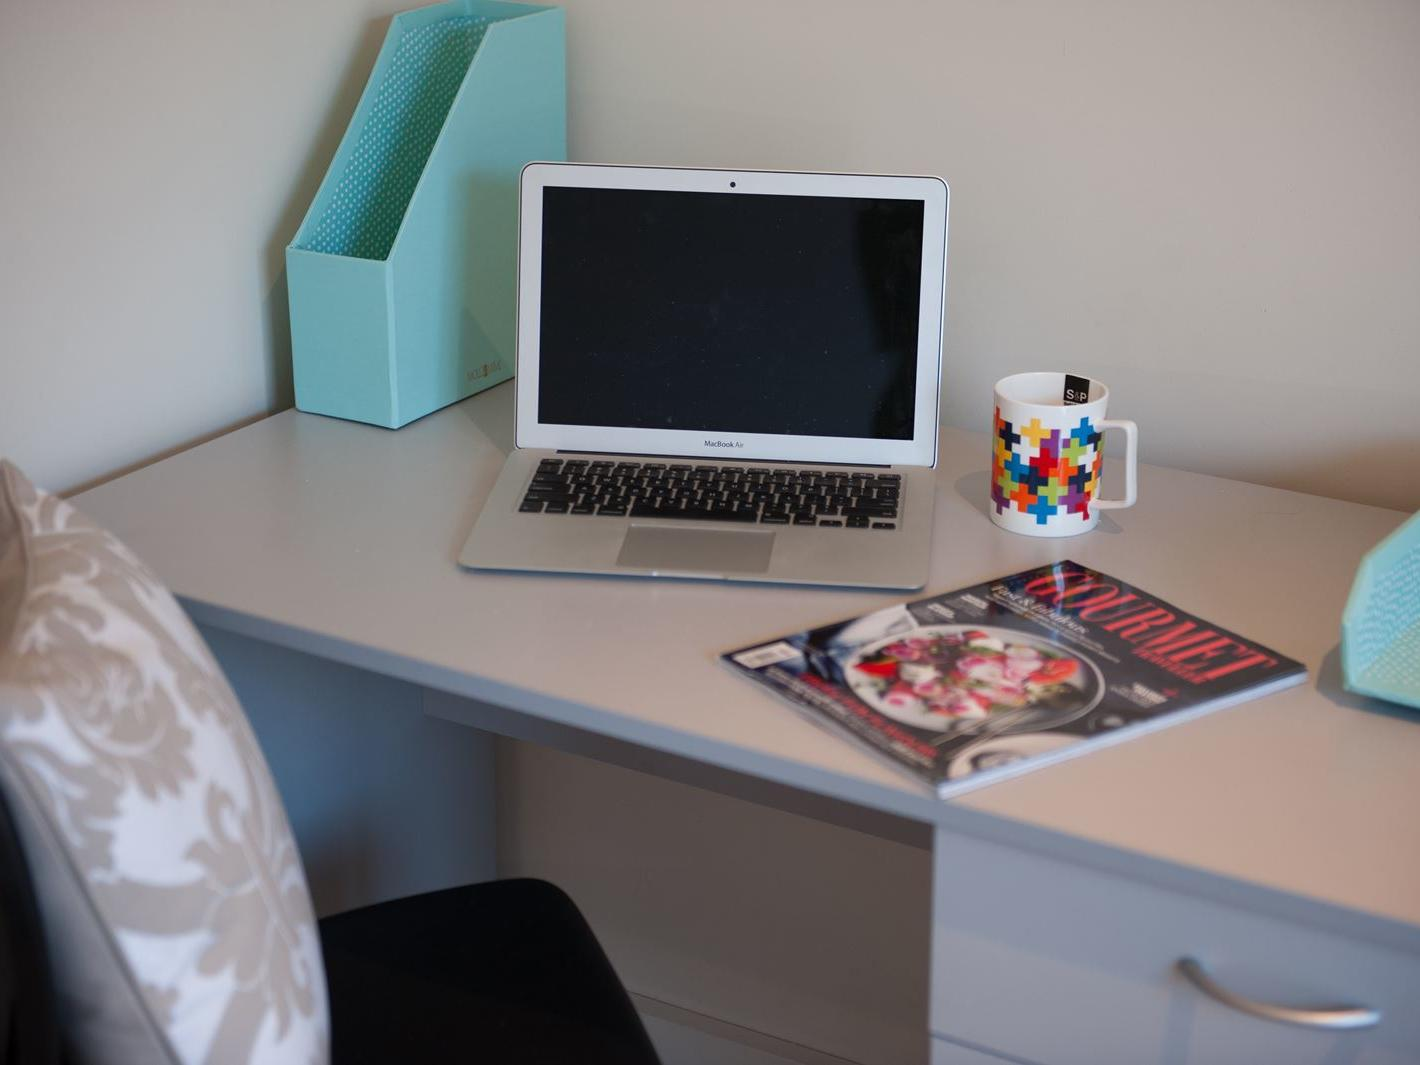 Student Living Edge Apartments – Gray Street Building - Typical study desk & chair in every bedroom